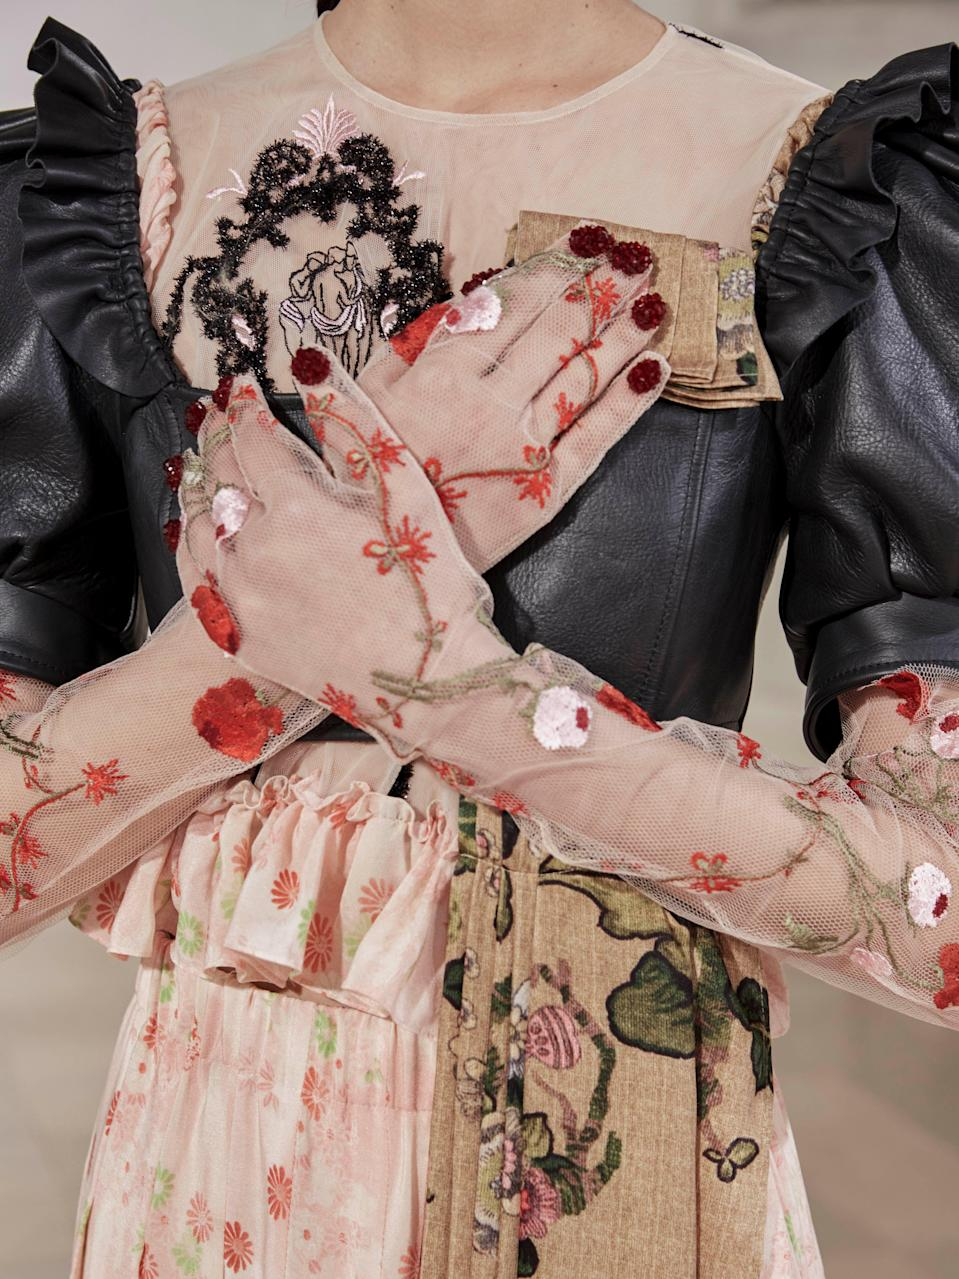 "<h2>Glorious Gloves</h2>Elbow-length gloves got the runway treatment this season. While Simone Rocha showed embroidered designs more fit for a red carpet, Miu Miu presented bright, puffer mitts that you could easily (and stylishly) hit the slopes in.<br> <br><em>Simone Rocha</em><span class=""copyright"">Photo: Courtesy of Simone Rocha.</span>"